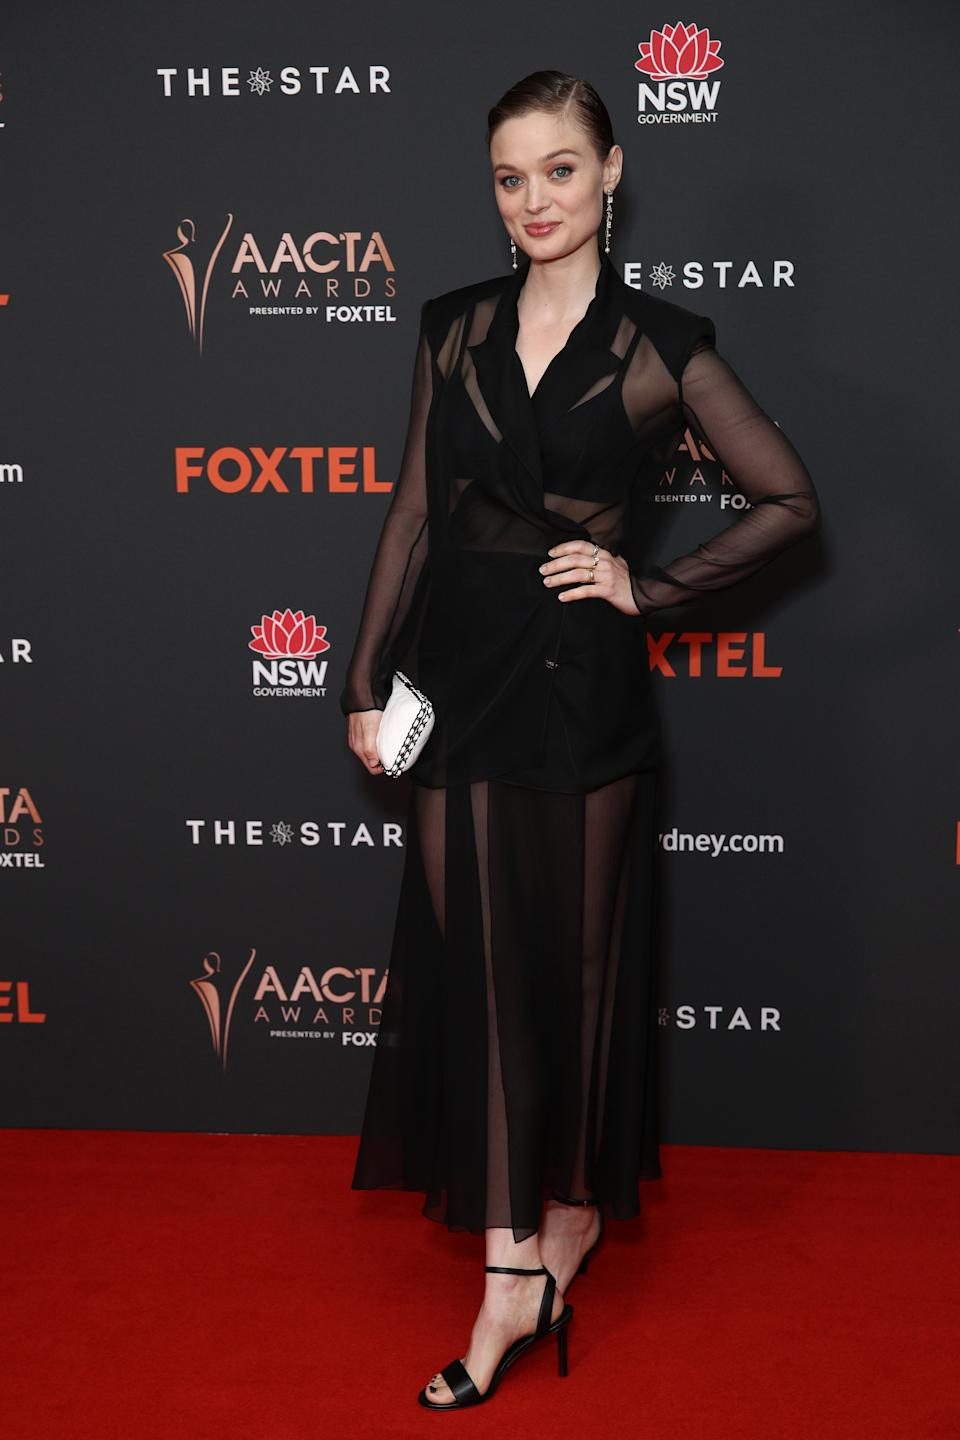 Bella Heathcote arrives ahead of the 2020 AACTA Awards presented by Foxtel at The Star on November 30, 2020 in Sydney, Australia.